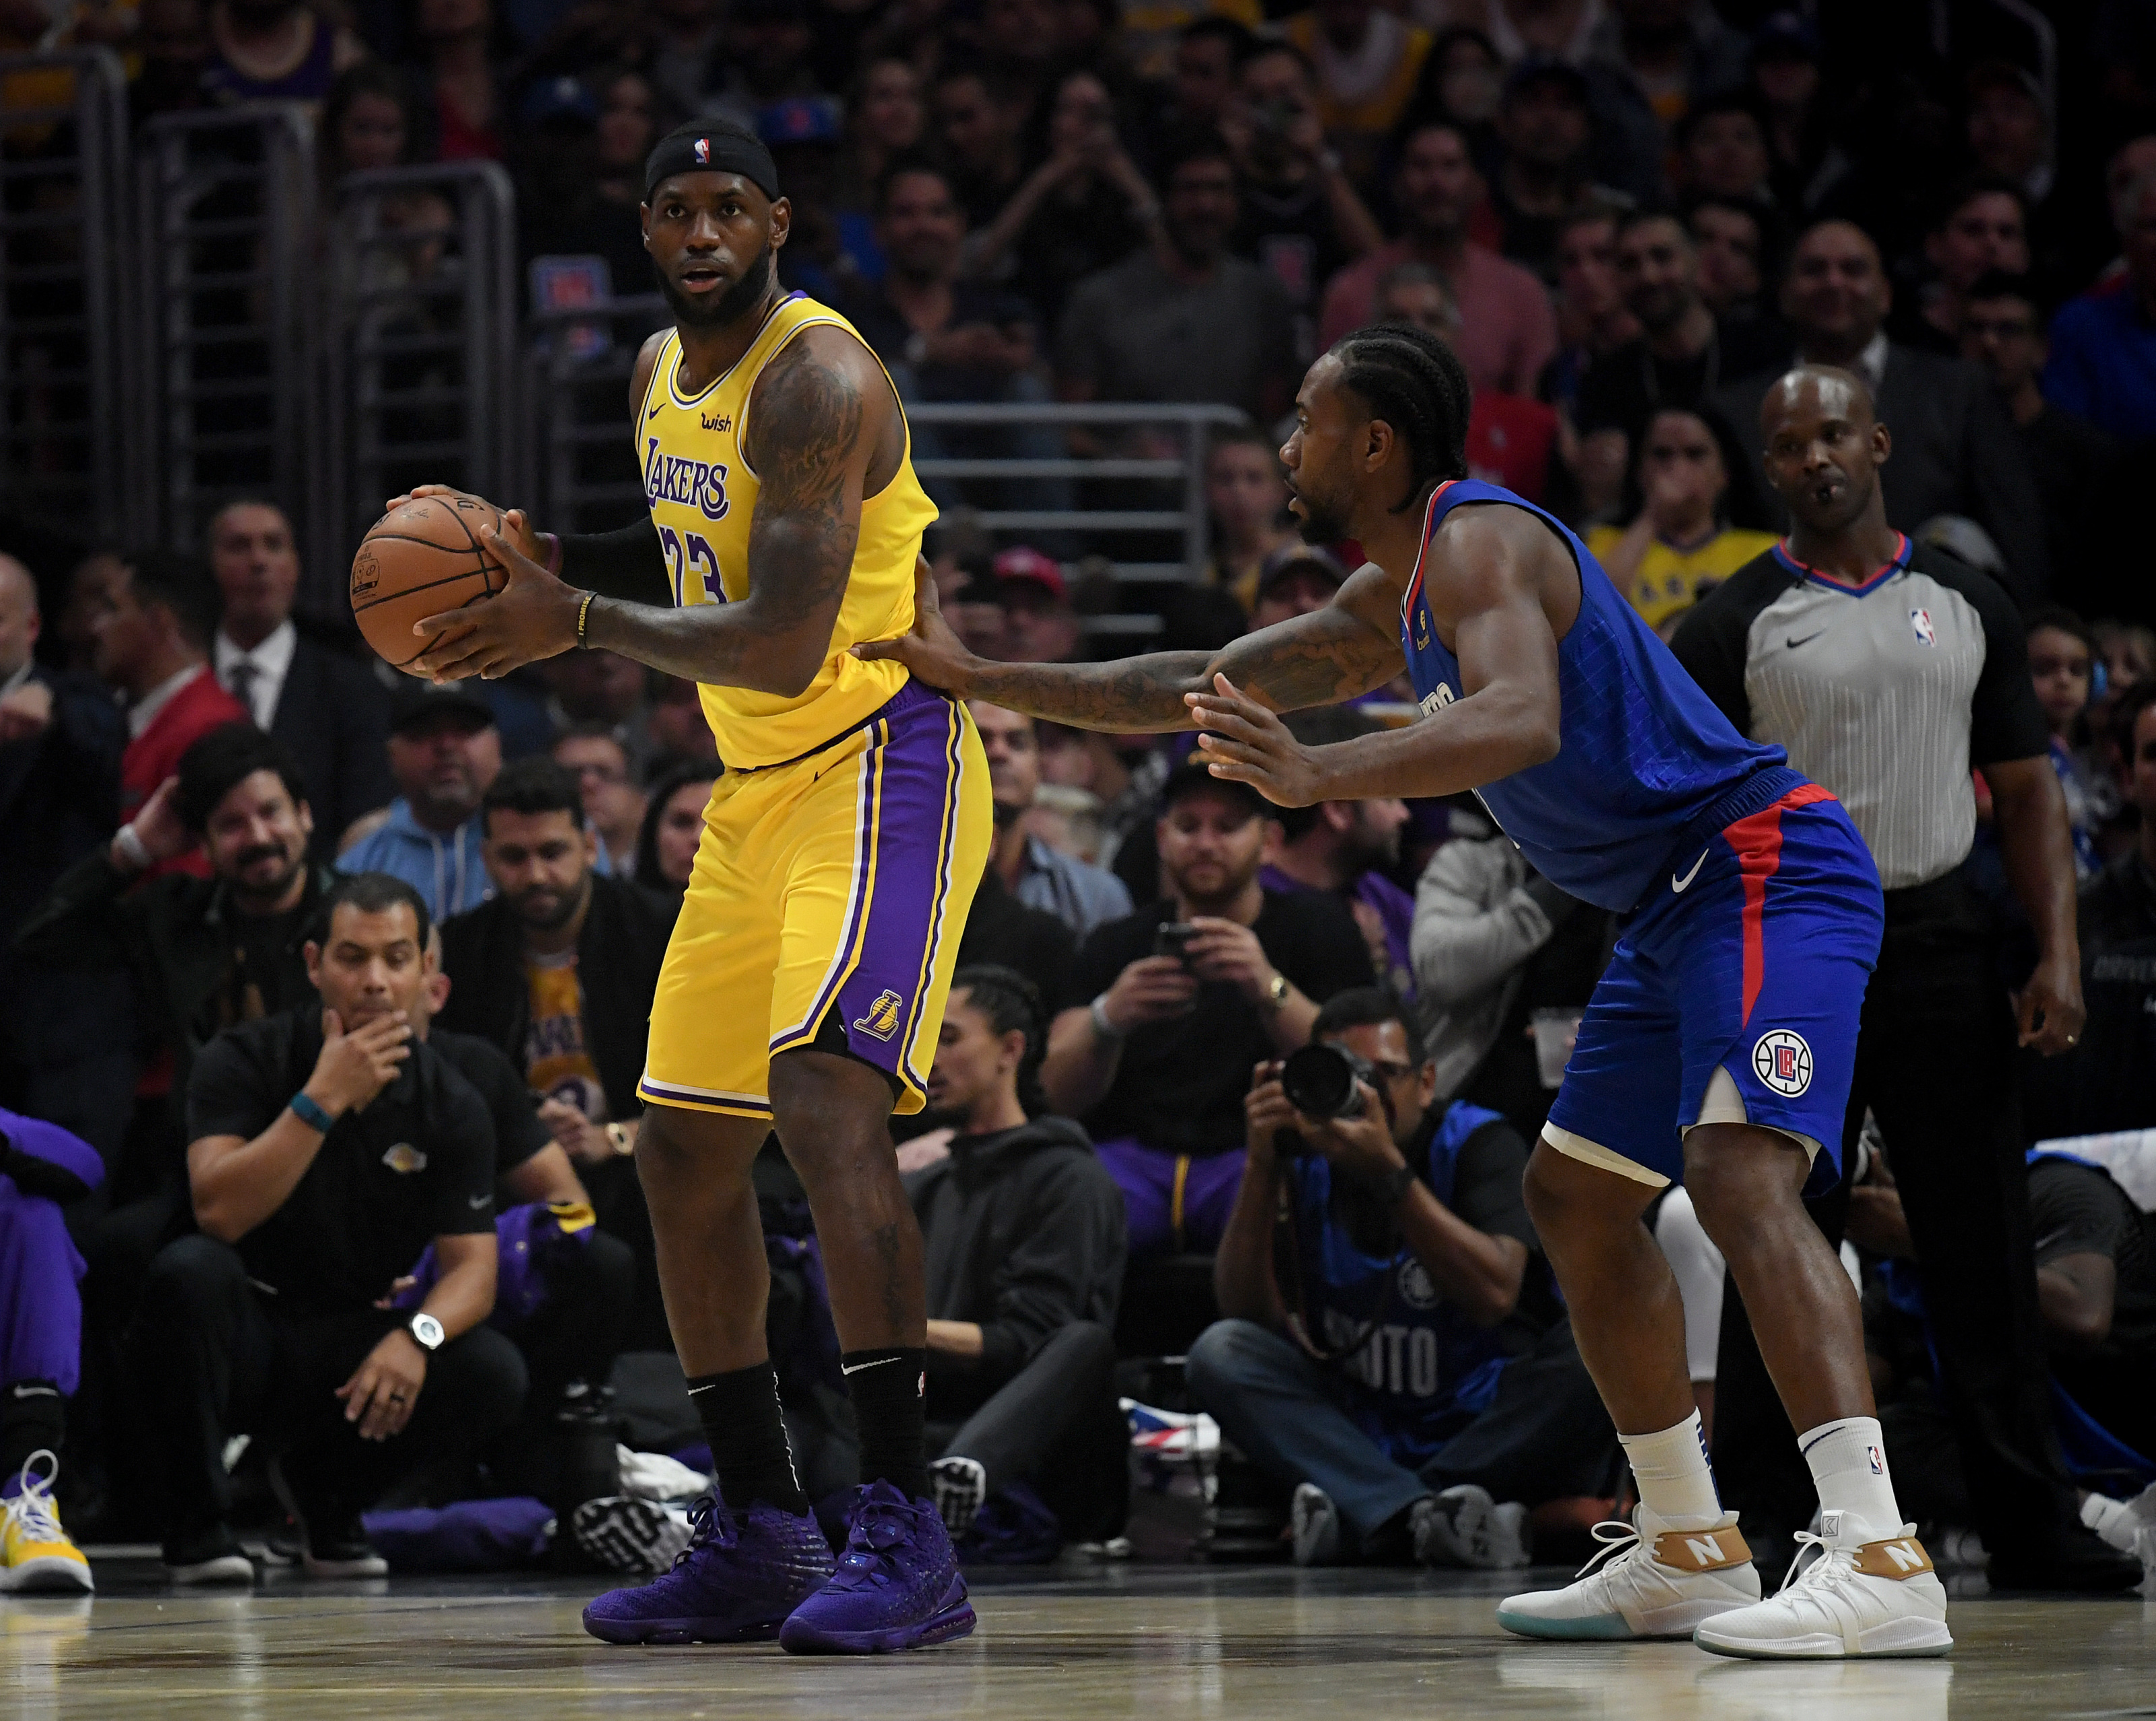 Los Angeles Lakers: Are they better than the Clippers past the halfway point?